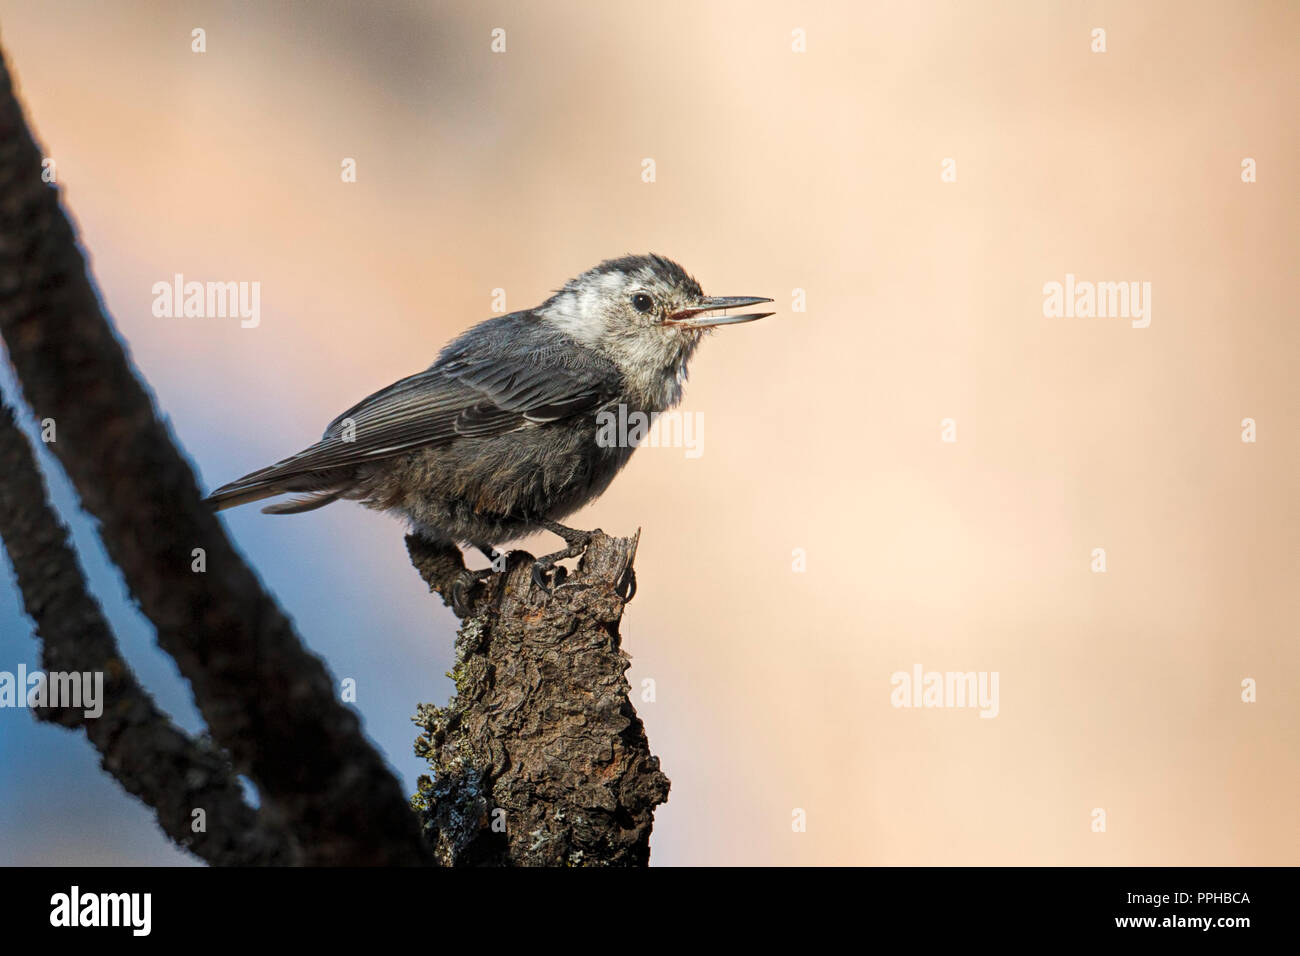 A cute nuthatch songbird is perched on a tree branch at Turnbull wildlife refuge in Cheney, Washington. - Stock Image